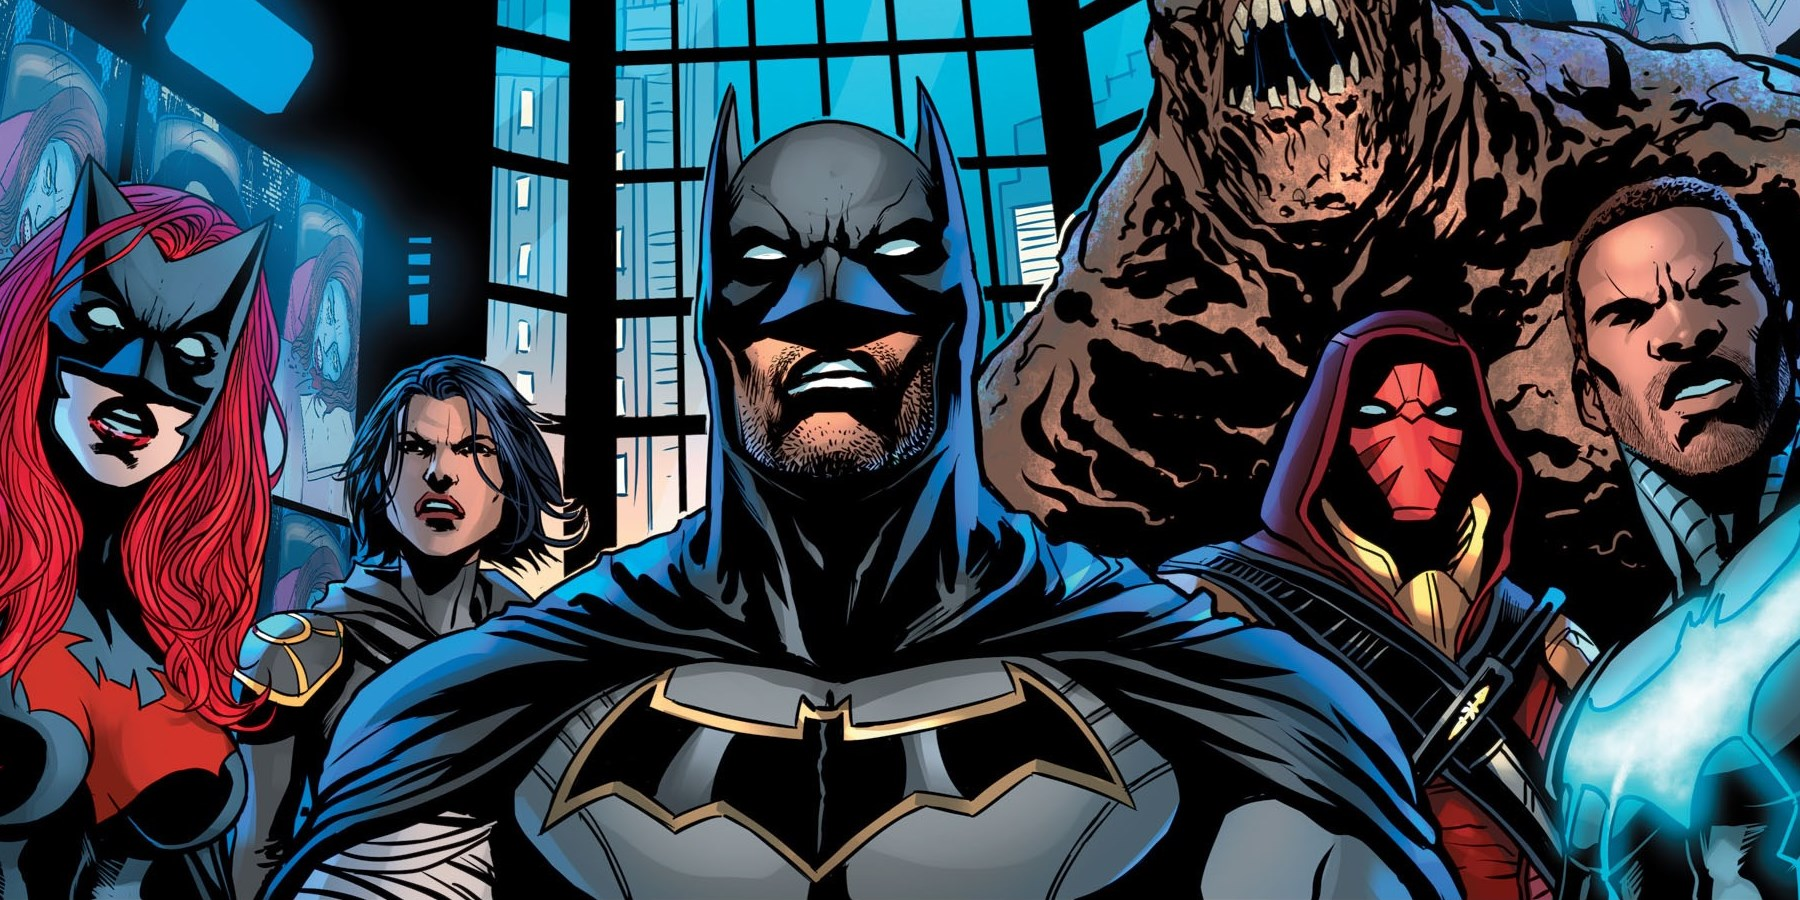 Batman Meets DC's New League of Shadows | Screen Rant